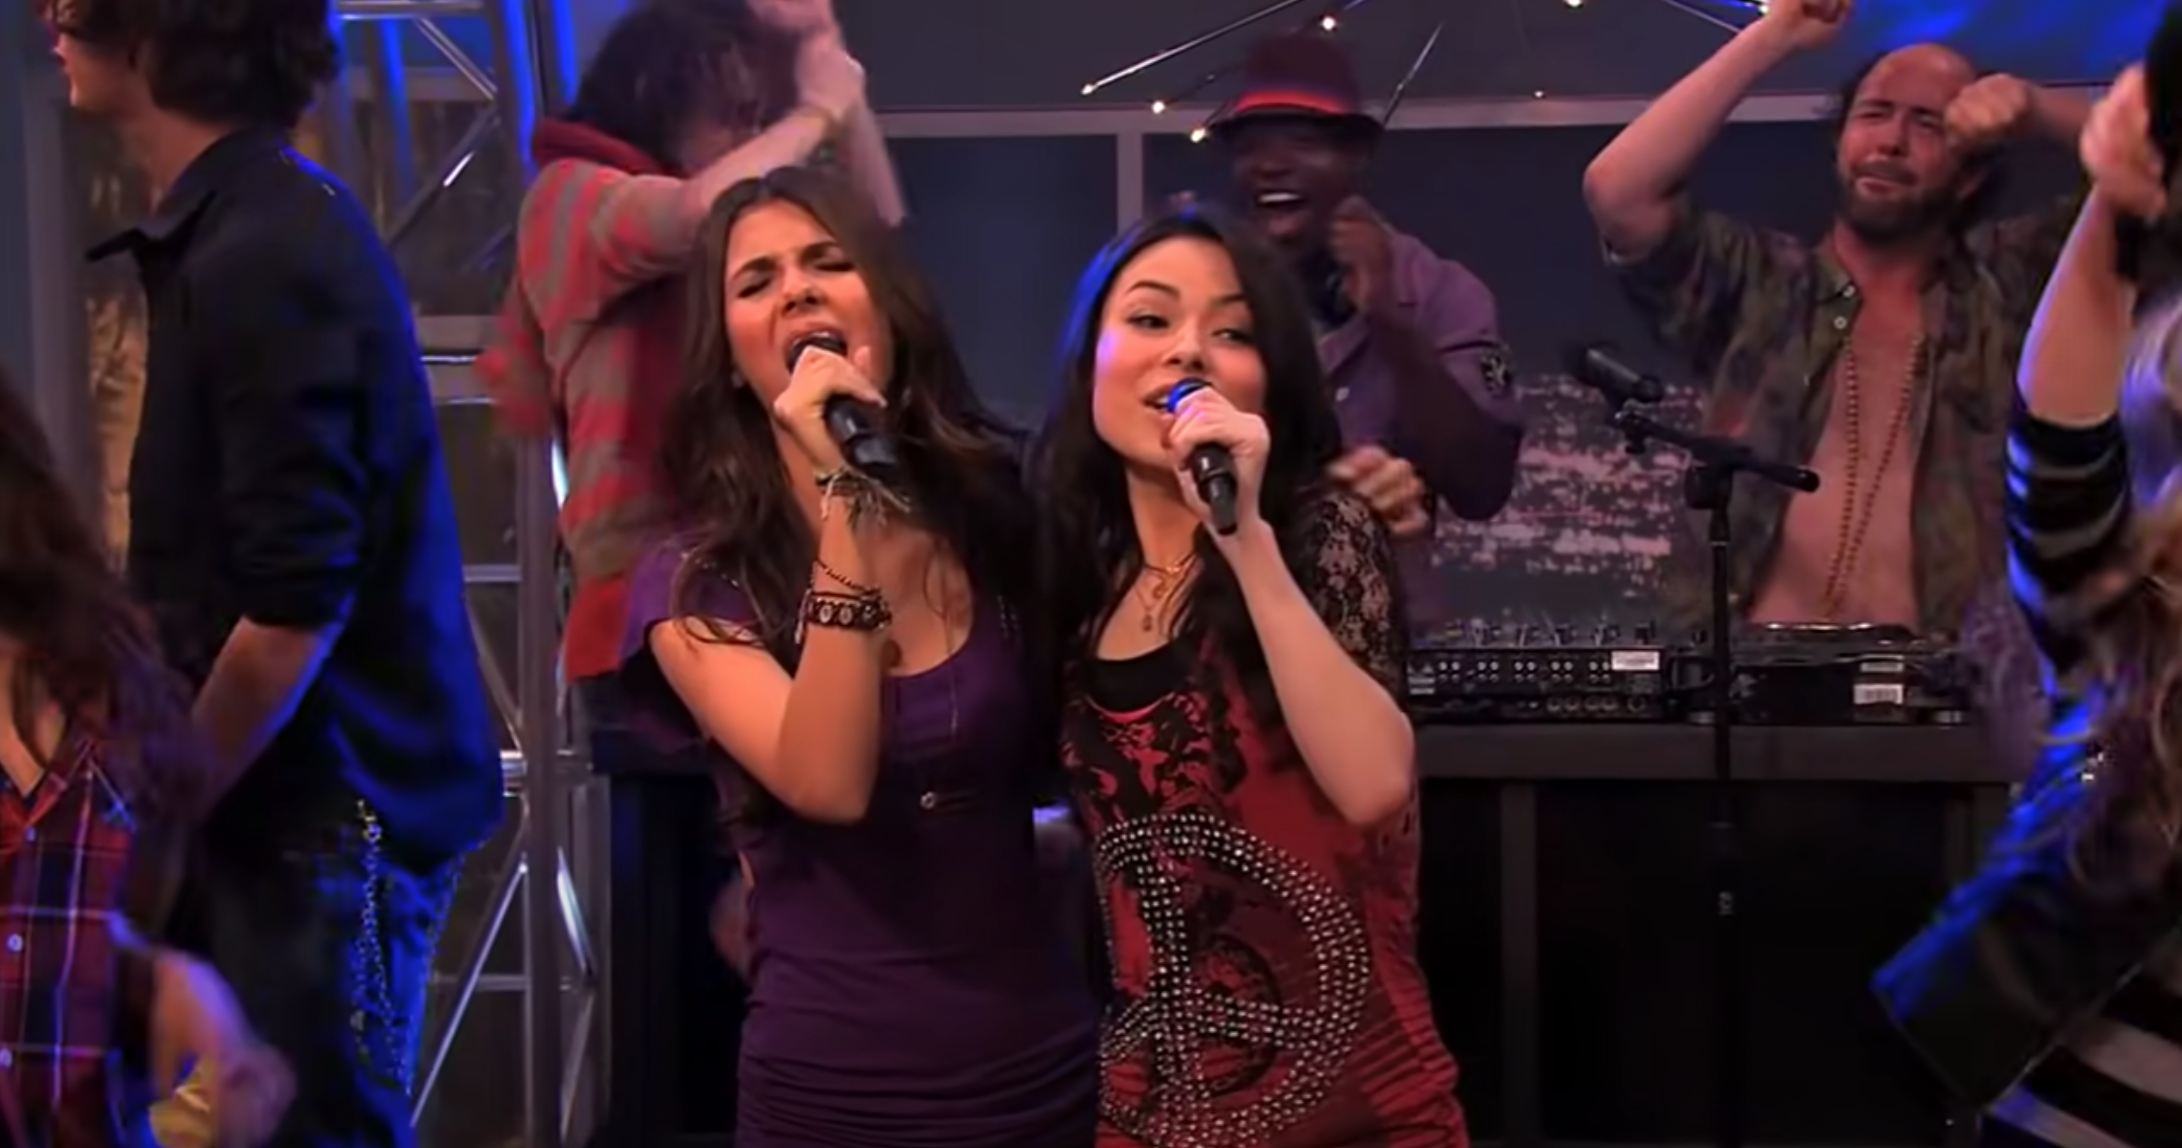 """Carly from """"iCarly"""" and Tori from """"Victorious"""" sing together on stage"""